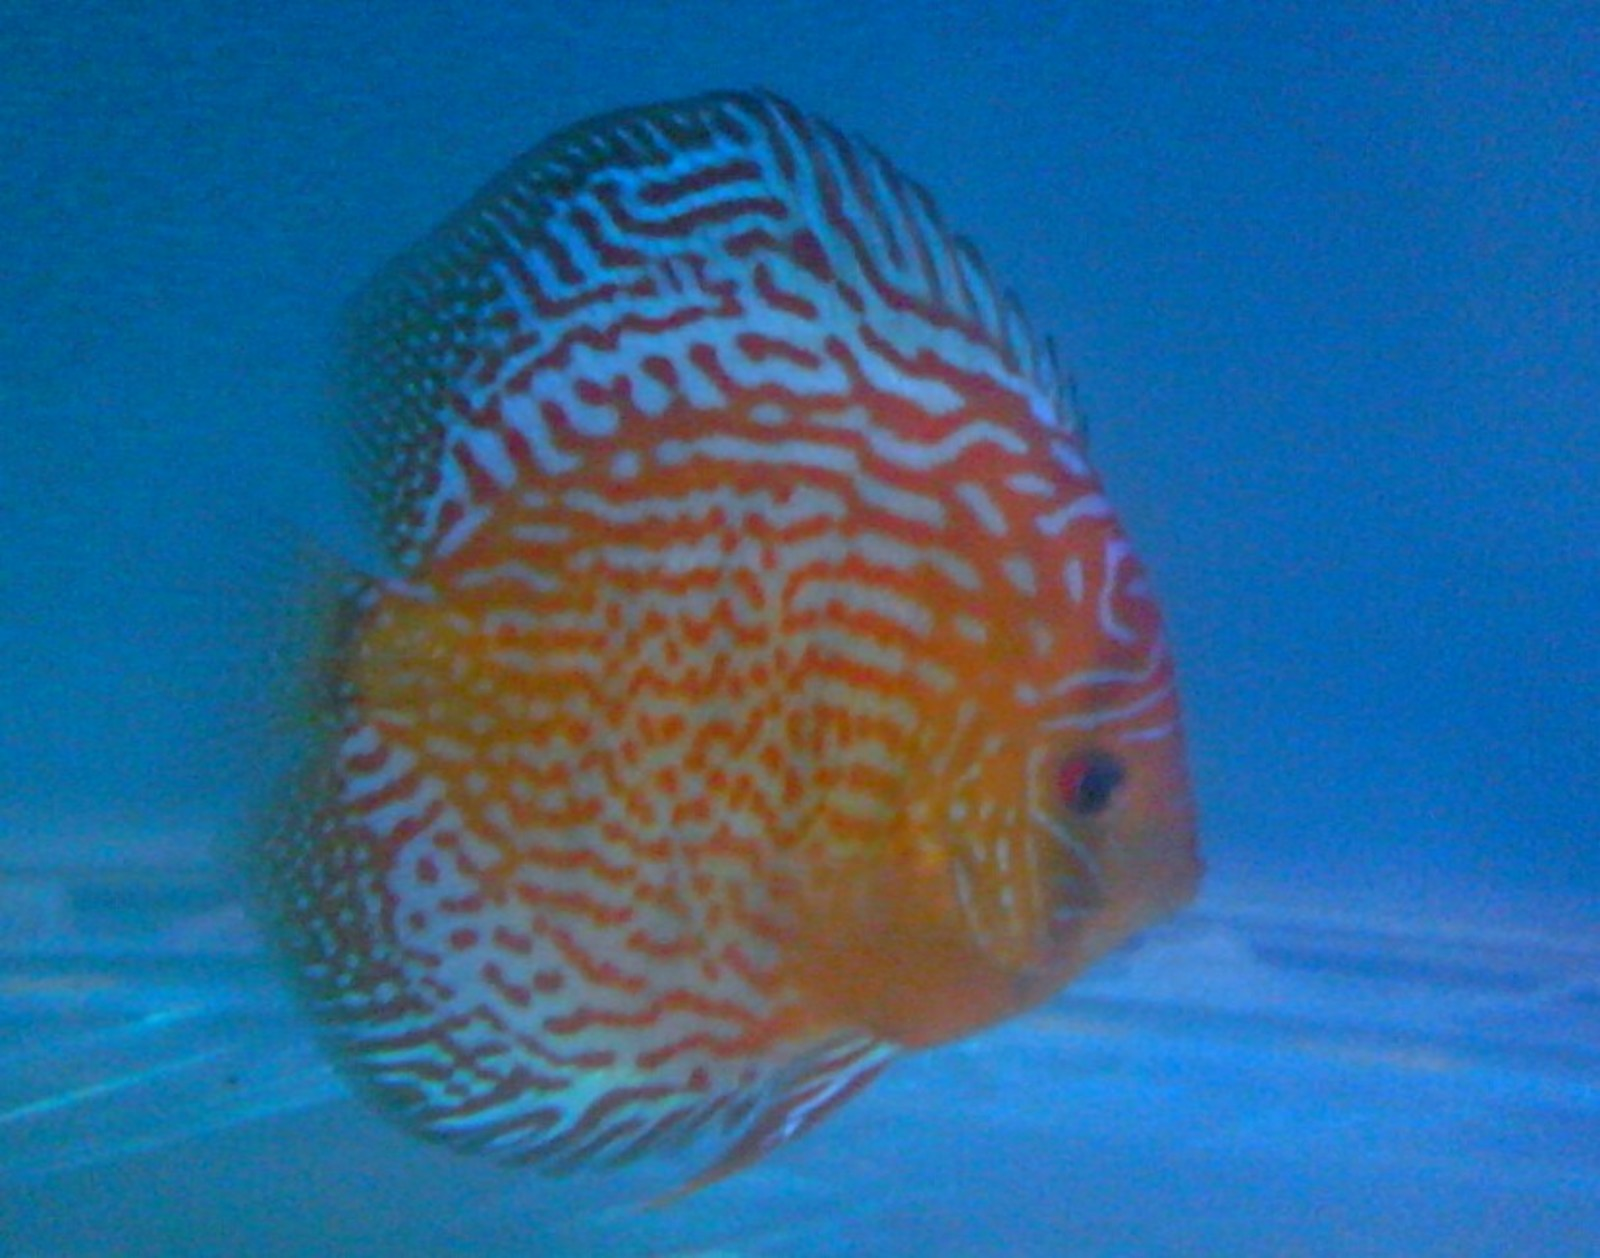 12 months 15 days from Egg SPOTTED LEOPARD DISCUS FISH IN INDIA. DISCUS BREED IN INDIA | by Tirthabrata Panja